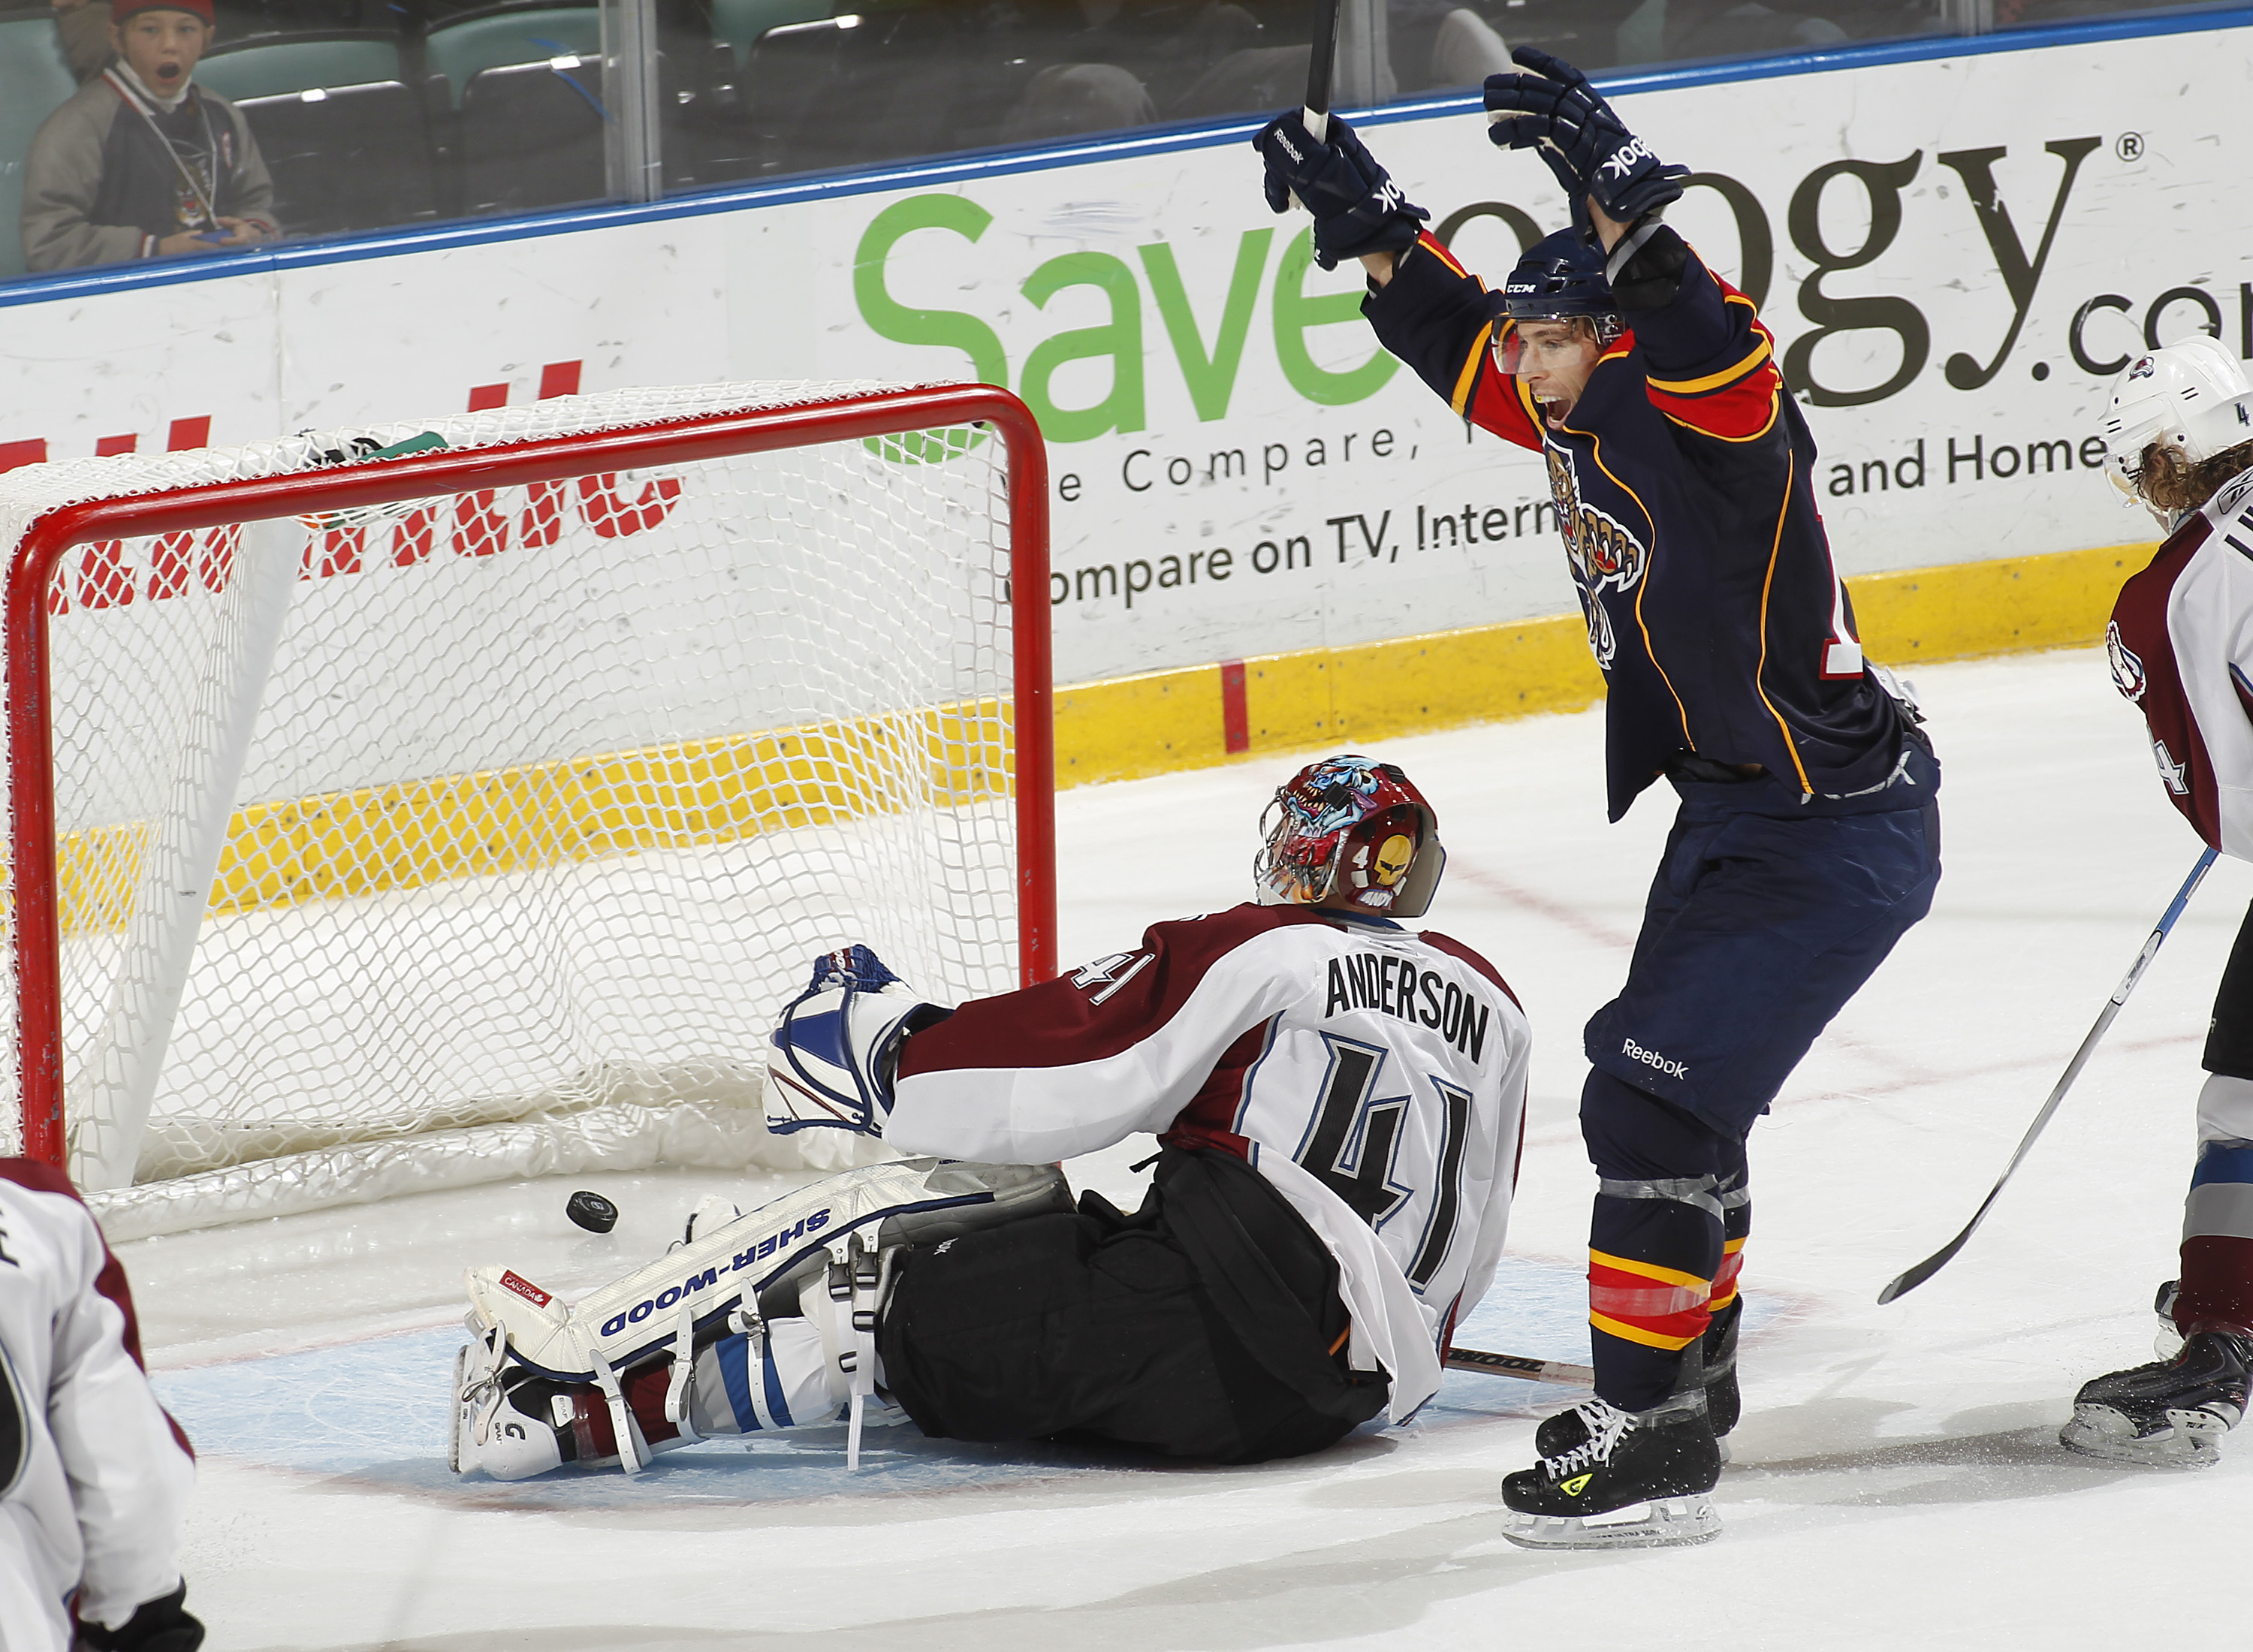 SUNRISE, FL - DECEMBER 7: Goaltender Craig Anderson #41 of the Colorado Avalanche looks back at the net as David Booth #10 celebrates the overtime goal by Stephen Weiss #9 of the Florida Panthers in overtime on December 7, 2010 at the BankAtlantic Center